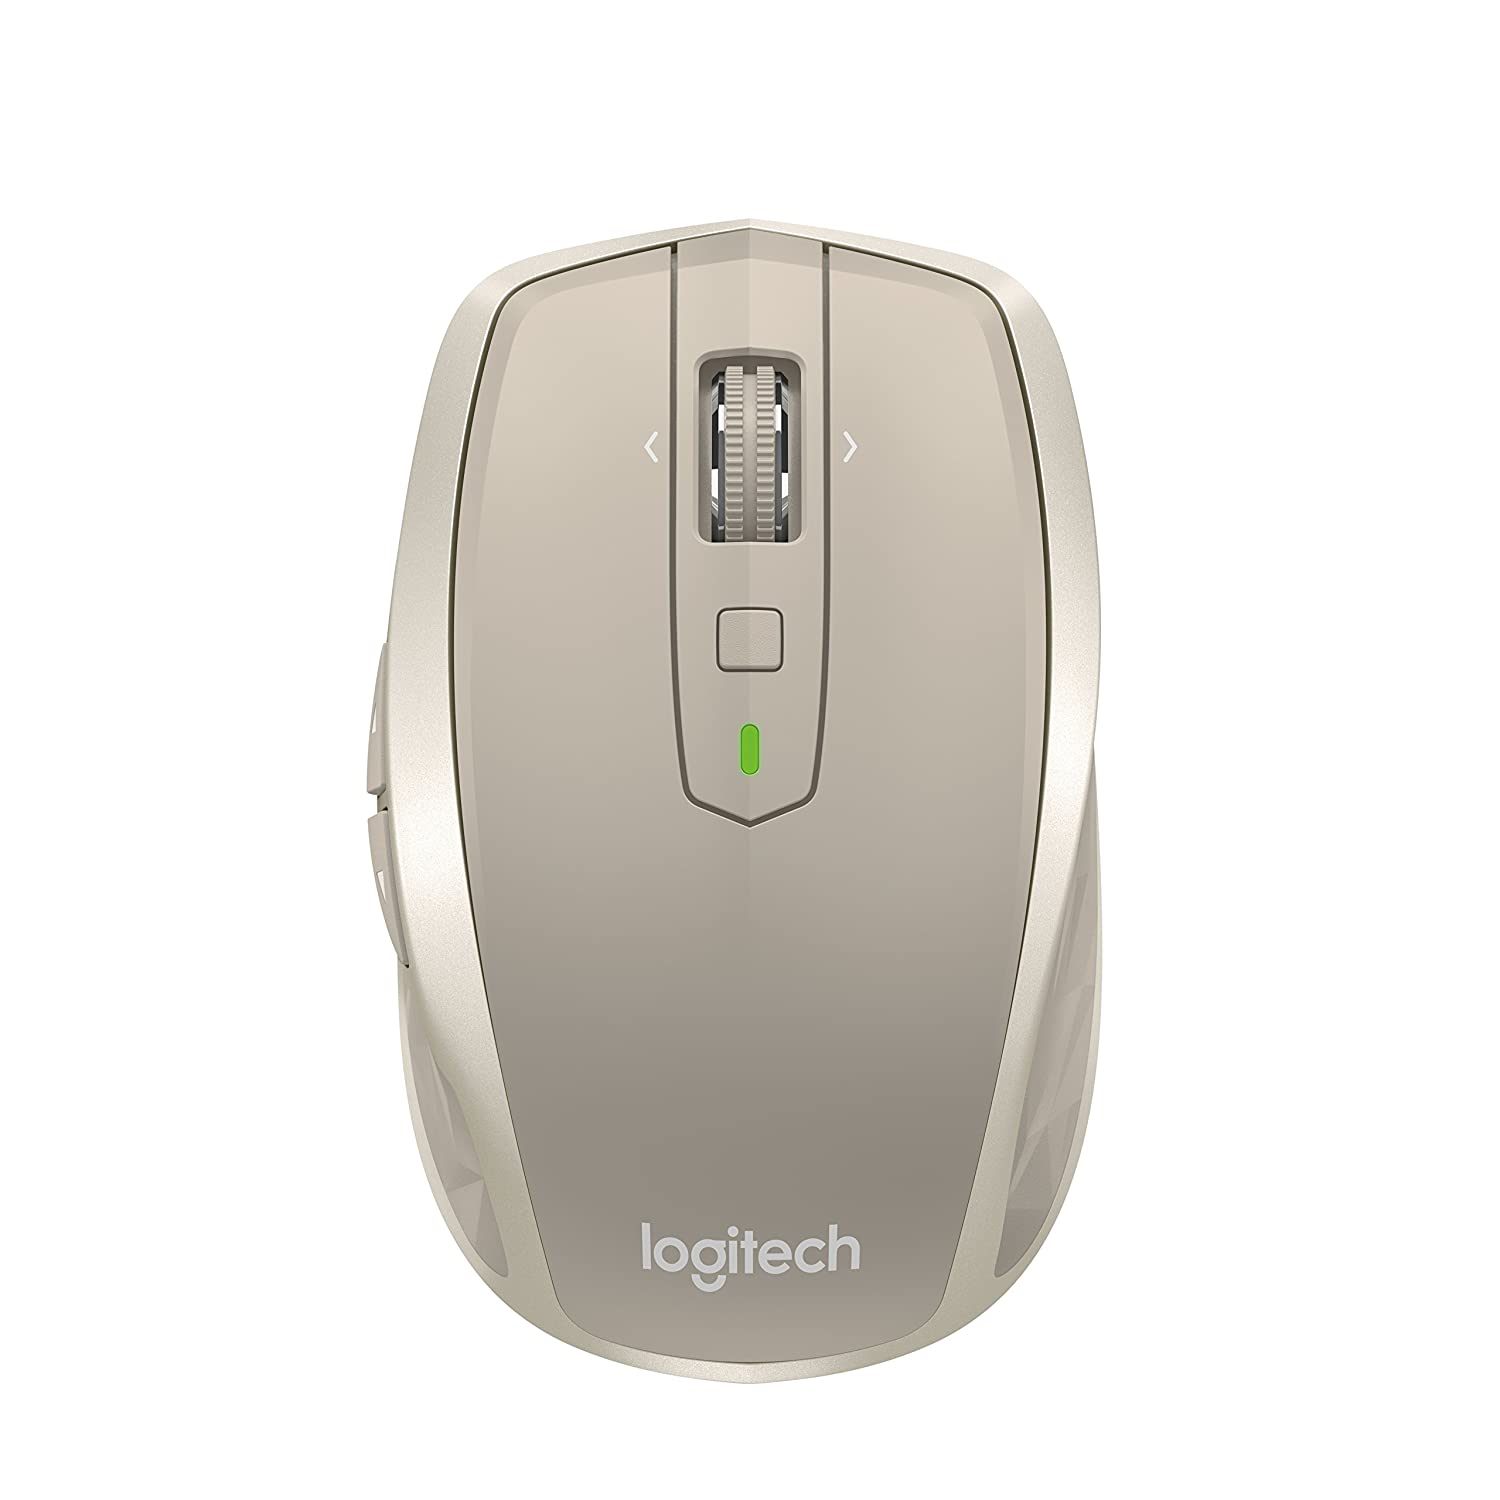 Amazon Logitech MX Anywhere 2 Wireless Mobile Mouse Long Range Wireless Mouse with Hyper Scroll and Easy Switch up to 3 Devices – Stone puters &